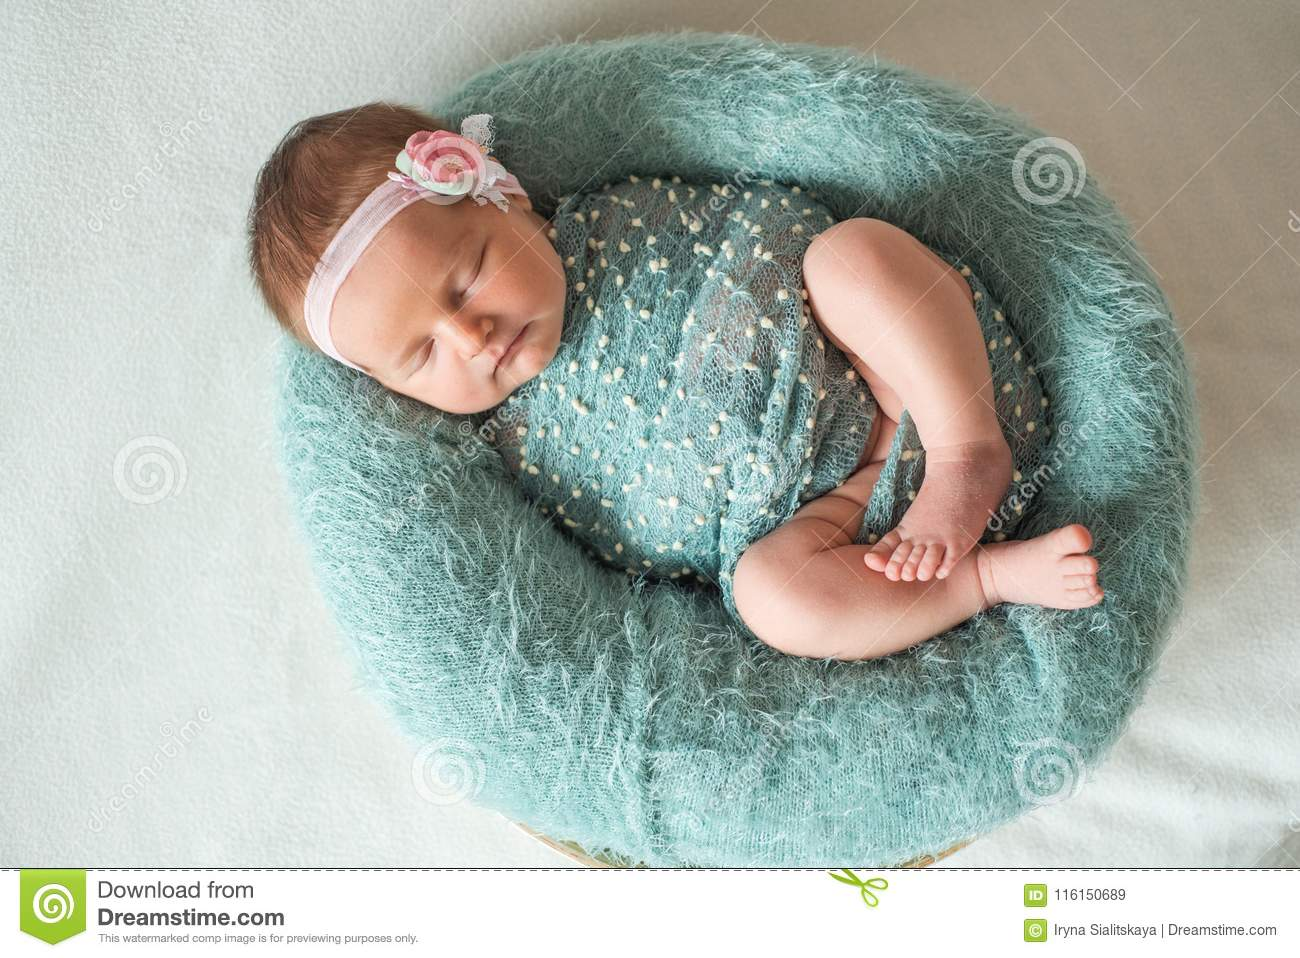 9bb47978f1ae Lovely Newborn Girl In Dress Sleeping Stock Image - Image of female ...